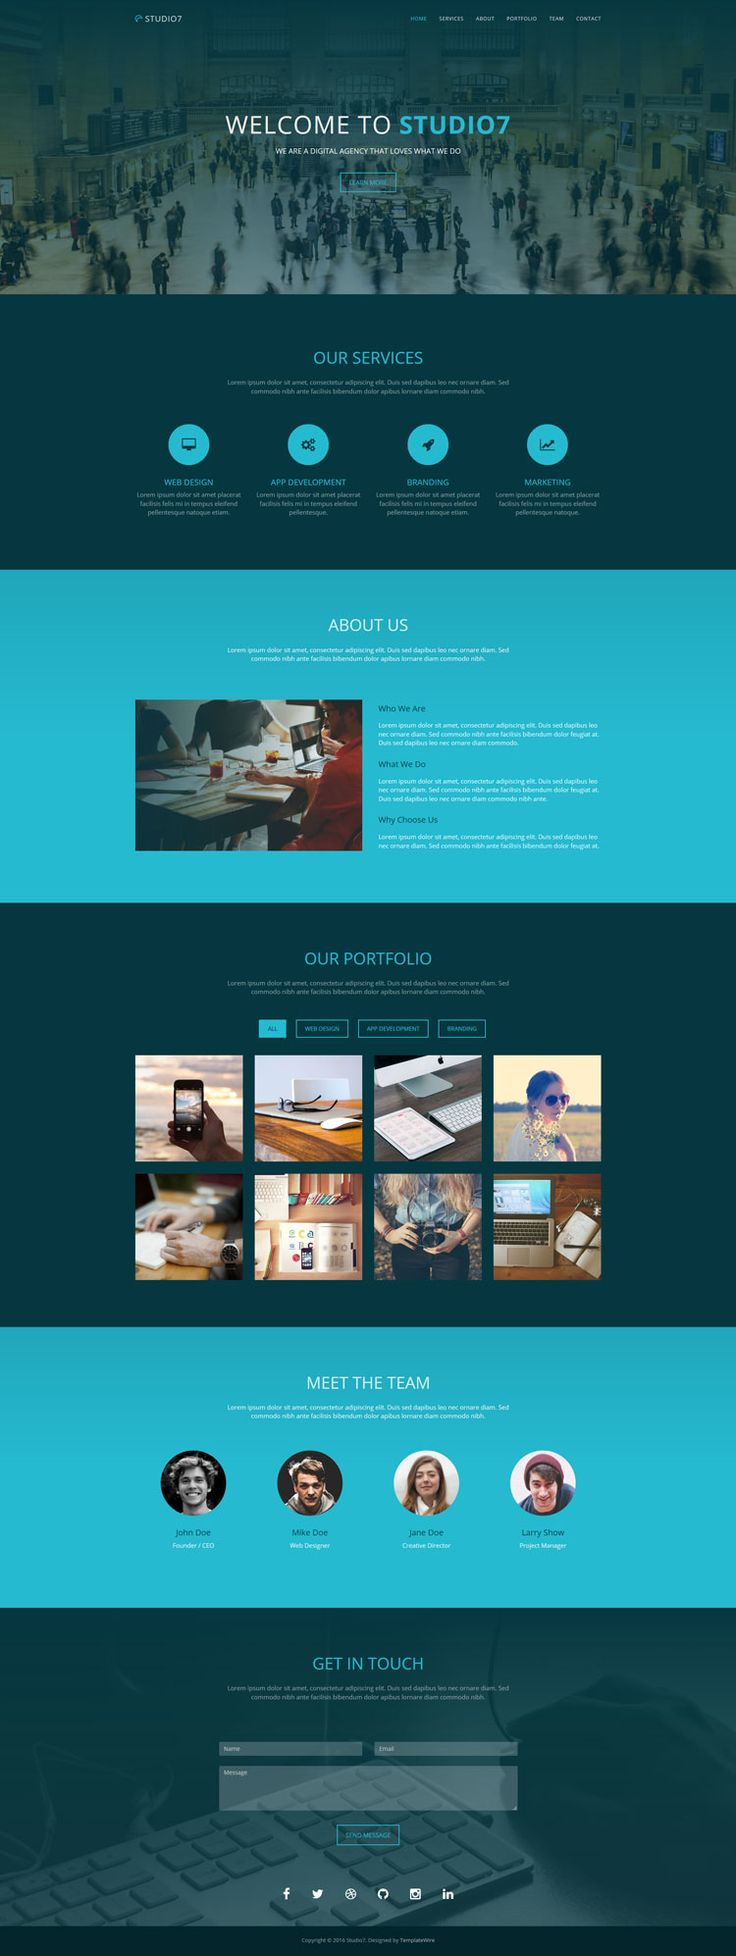 Studio7 is a free one page website template for agencies, creatives and small businesses.